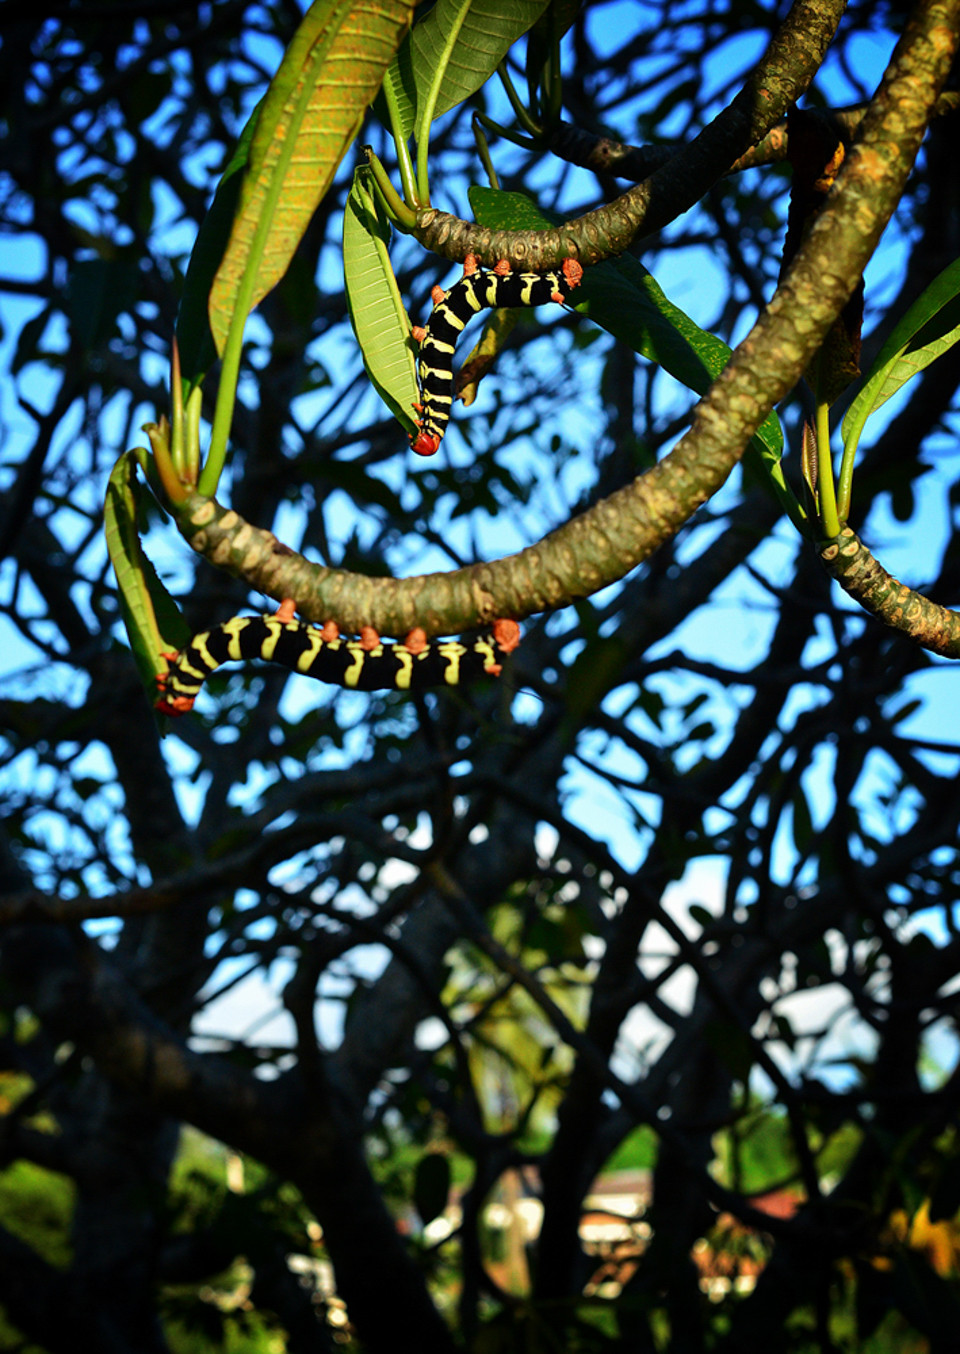 Frangipani Caterpillars photographed by Fergus Ford